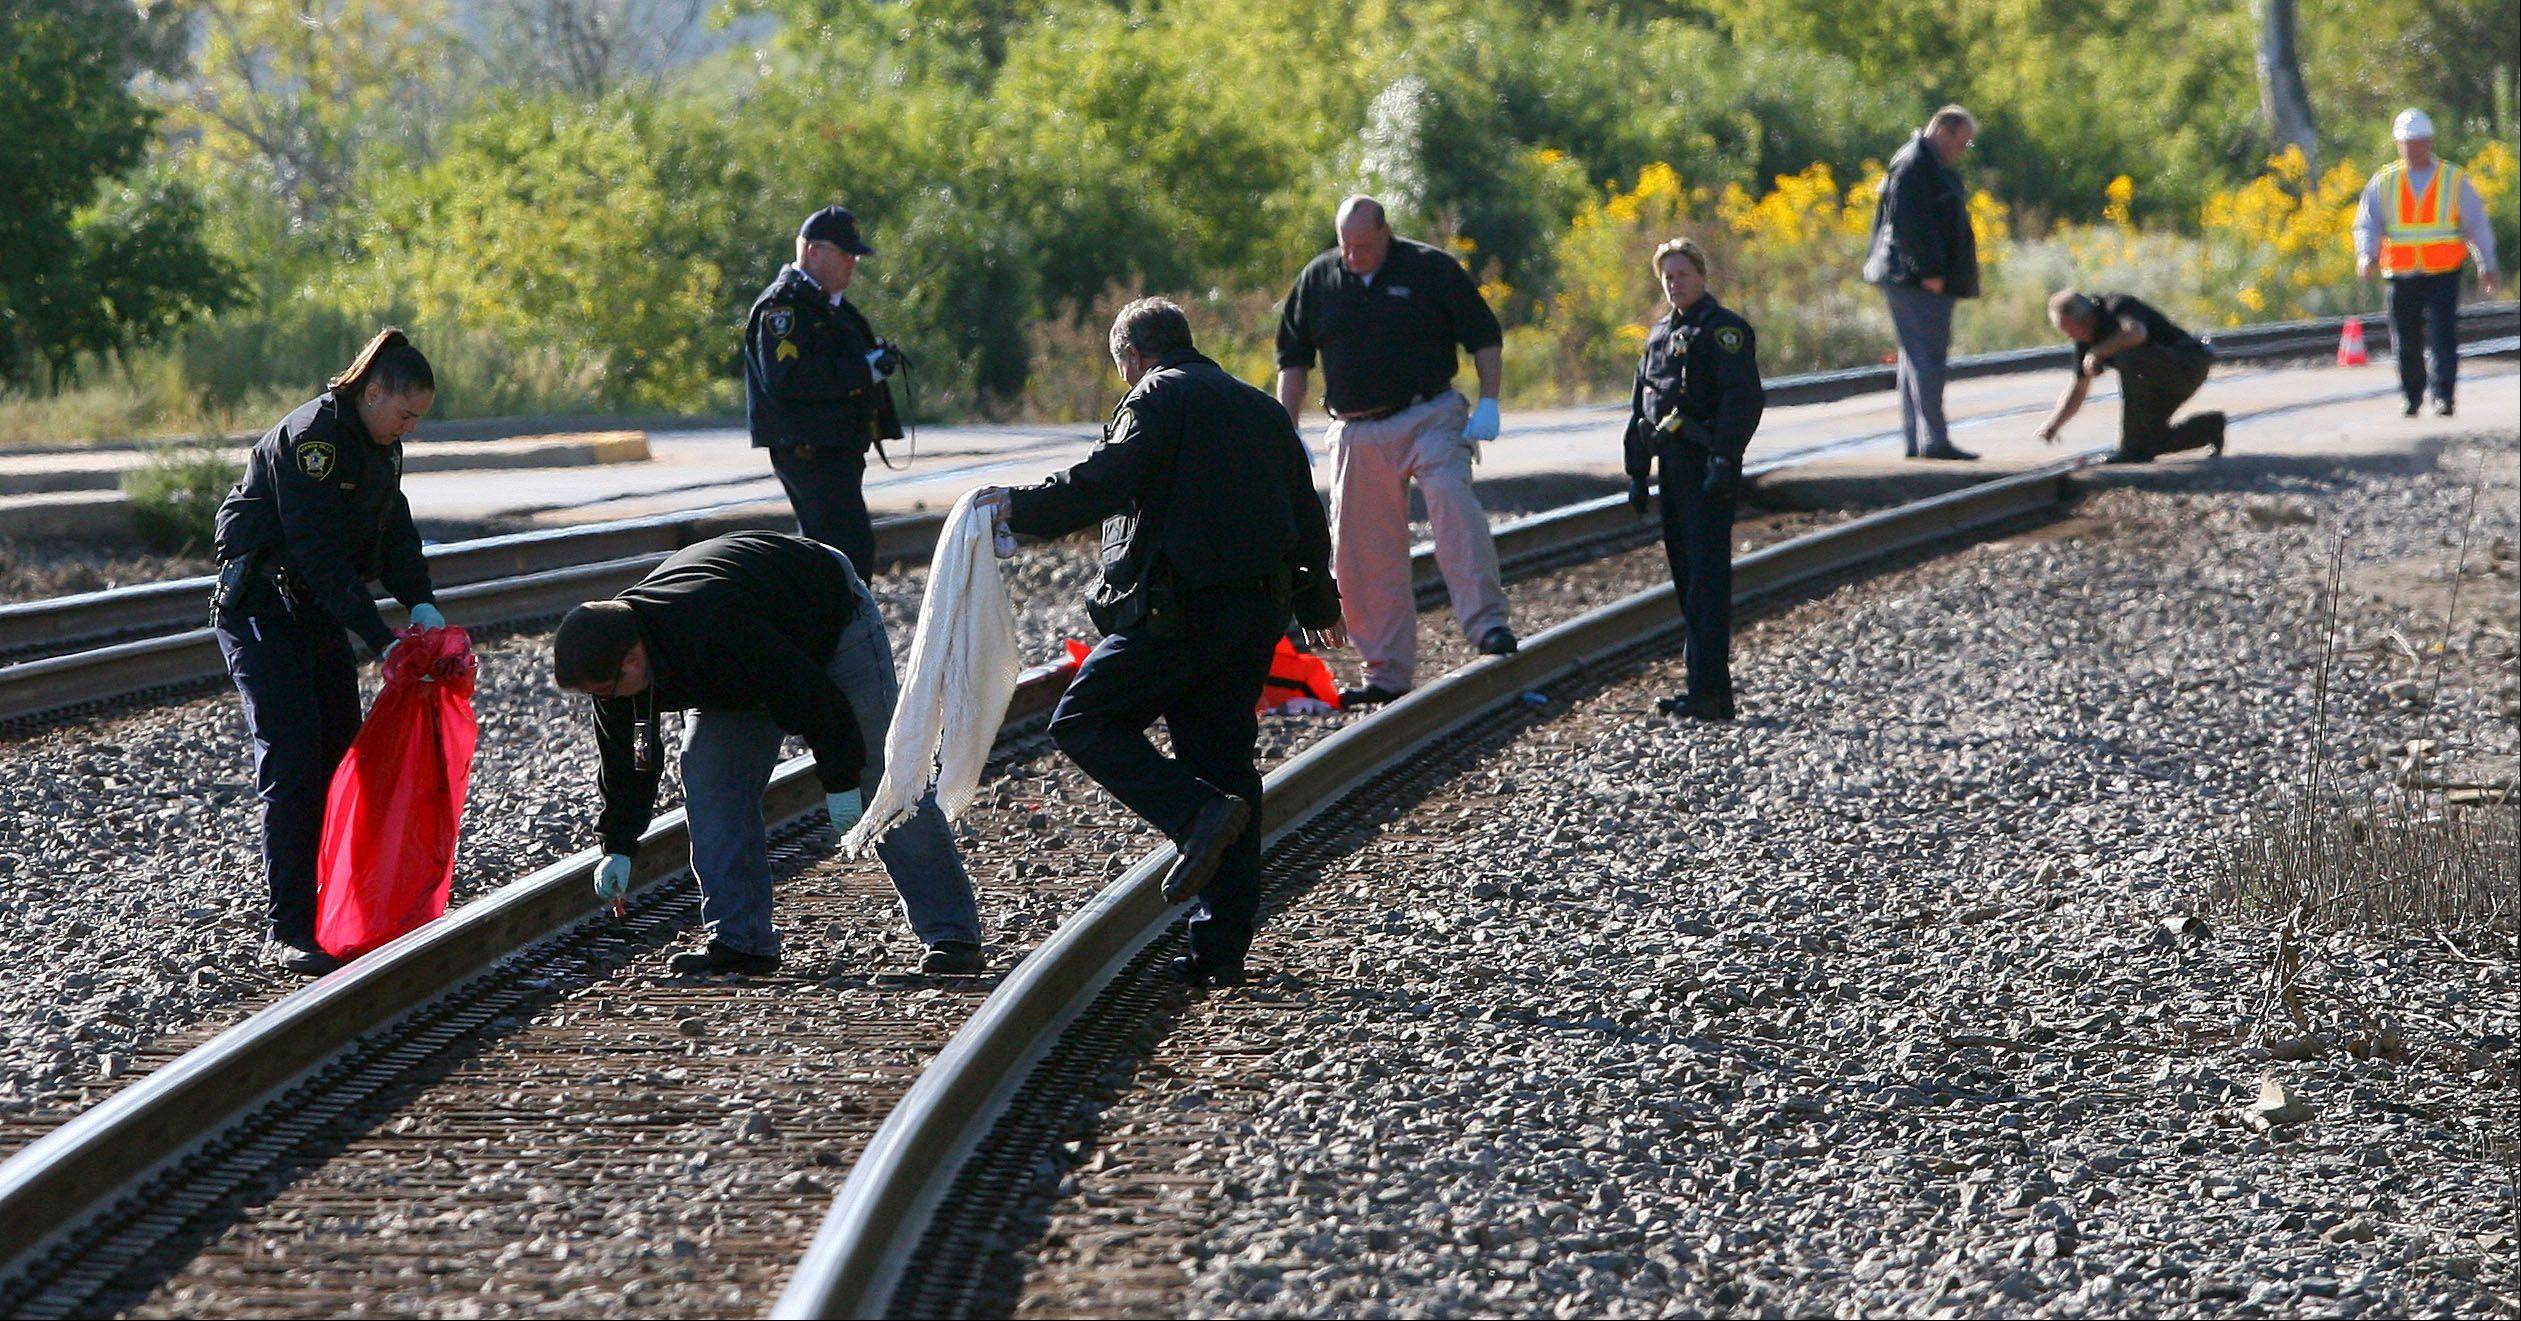 Officials collect evidence along the train tracks at Butterfield Road near Route 60 in Vernon Hills this morning after a pedestrian was struck and killed by an inbound Metra train.